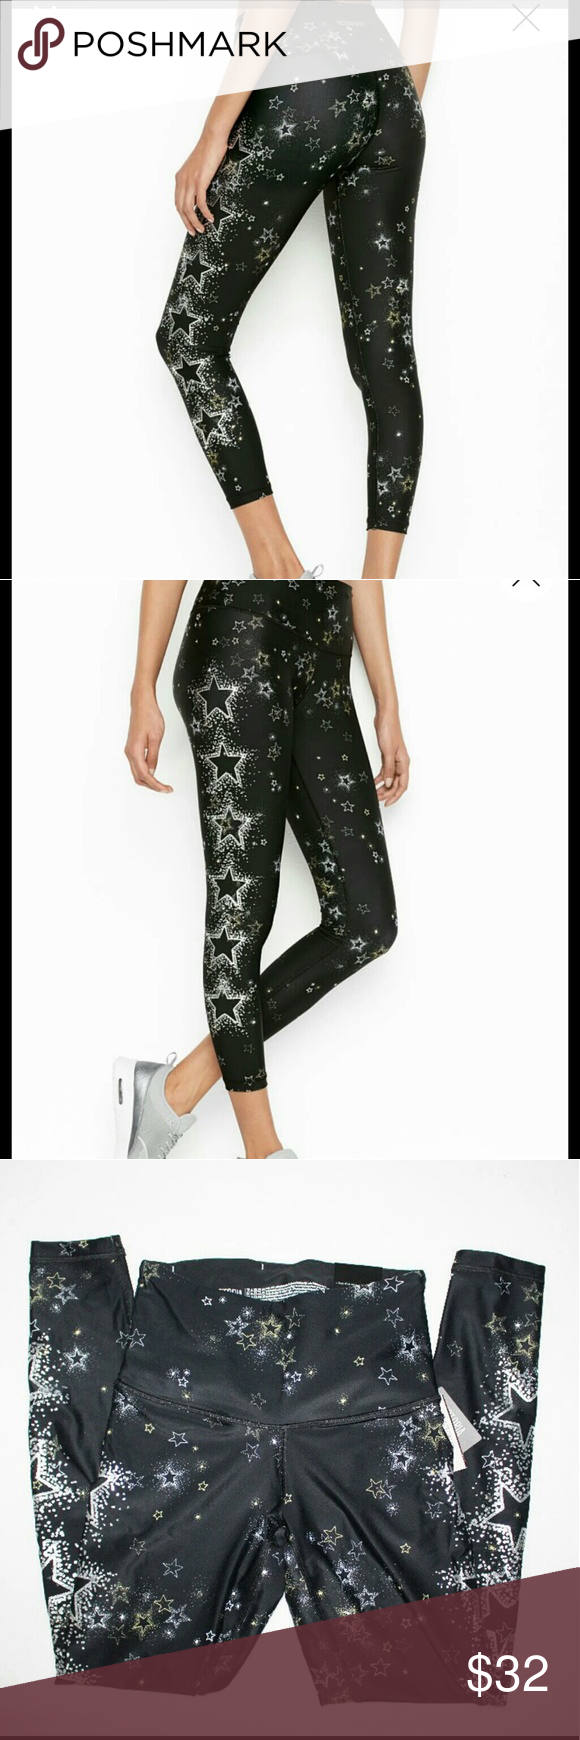 df6688ed05b452 New Victoria's Secret Sports Stardust Leggings XS Victoria's Secret Sport  NEW! 7/8 Printed Tight Color : Stardust (Silver and Gold stars on black)  Size : XS ...